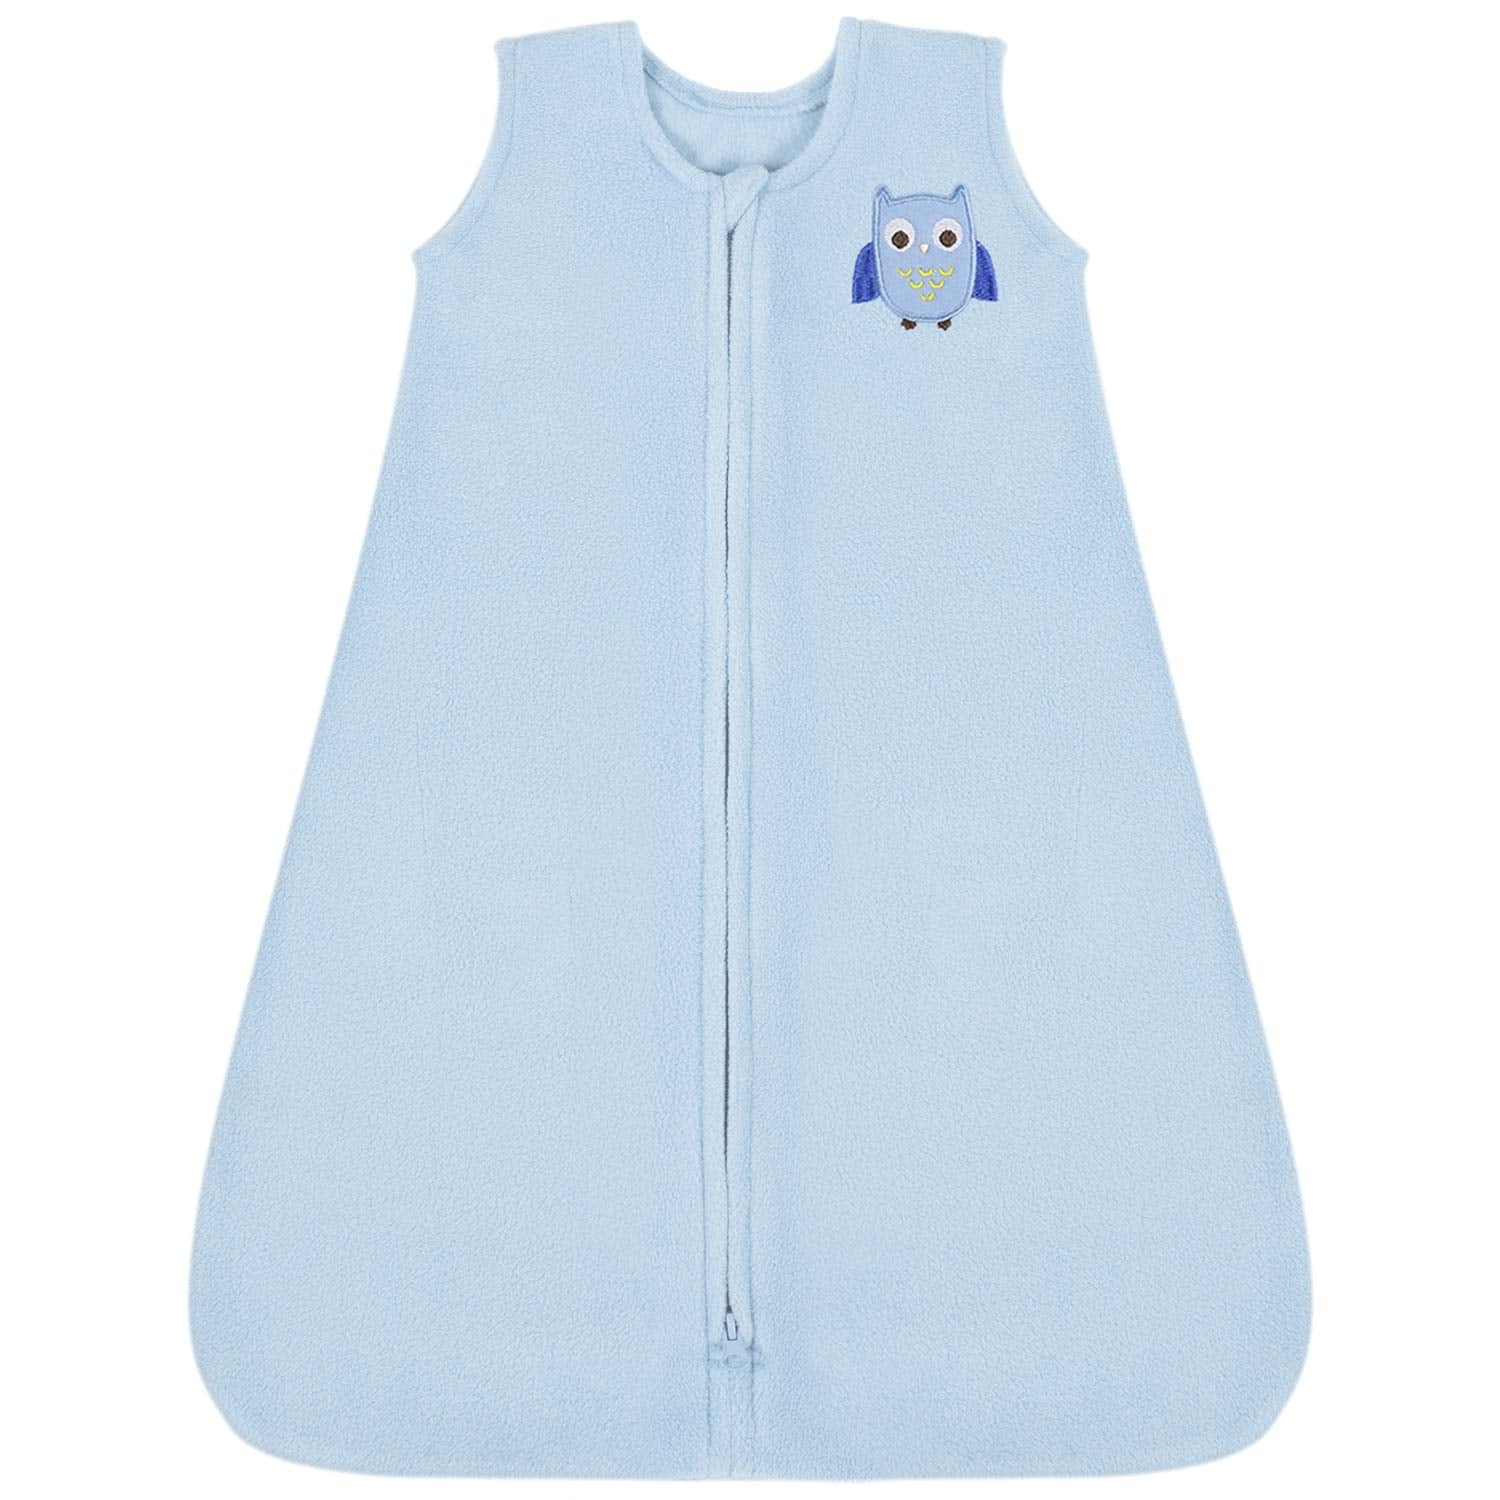 All Season Micro-Fleece Baby Sleep Bag and Sack with Inverted Zipper 12-18 Months